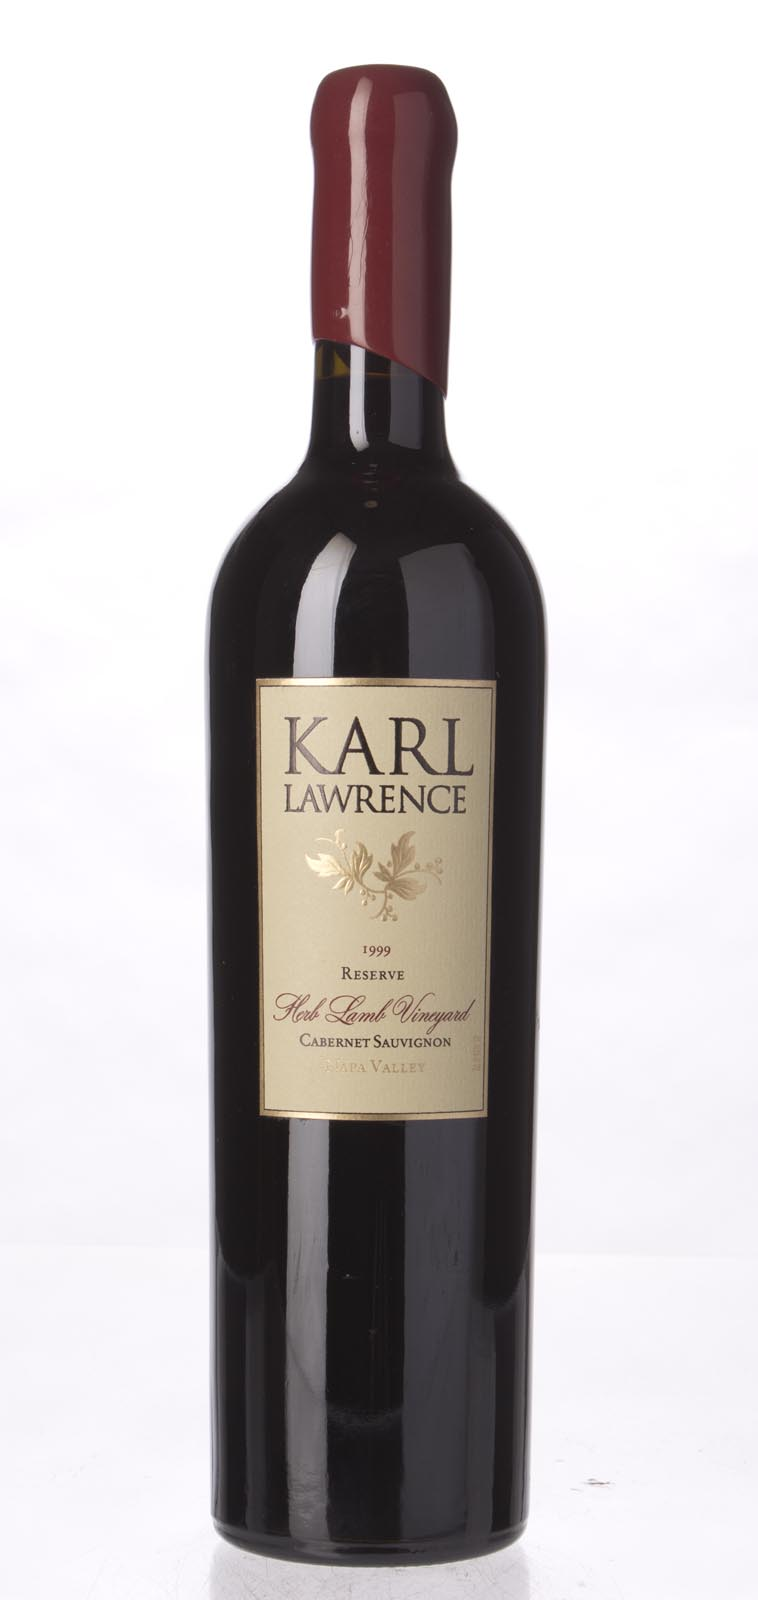 Karl Lawrence Cabernet Sauvignon Reserve Herb Lamb Vineyard 1999, 750mL () from The BPW - Merchants of rare and fine wines.